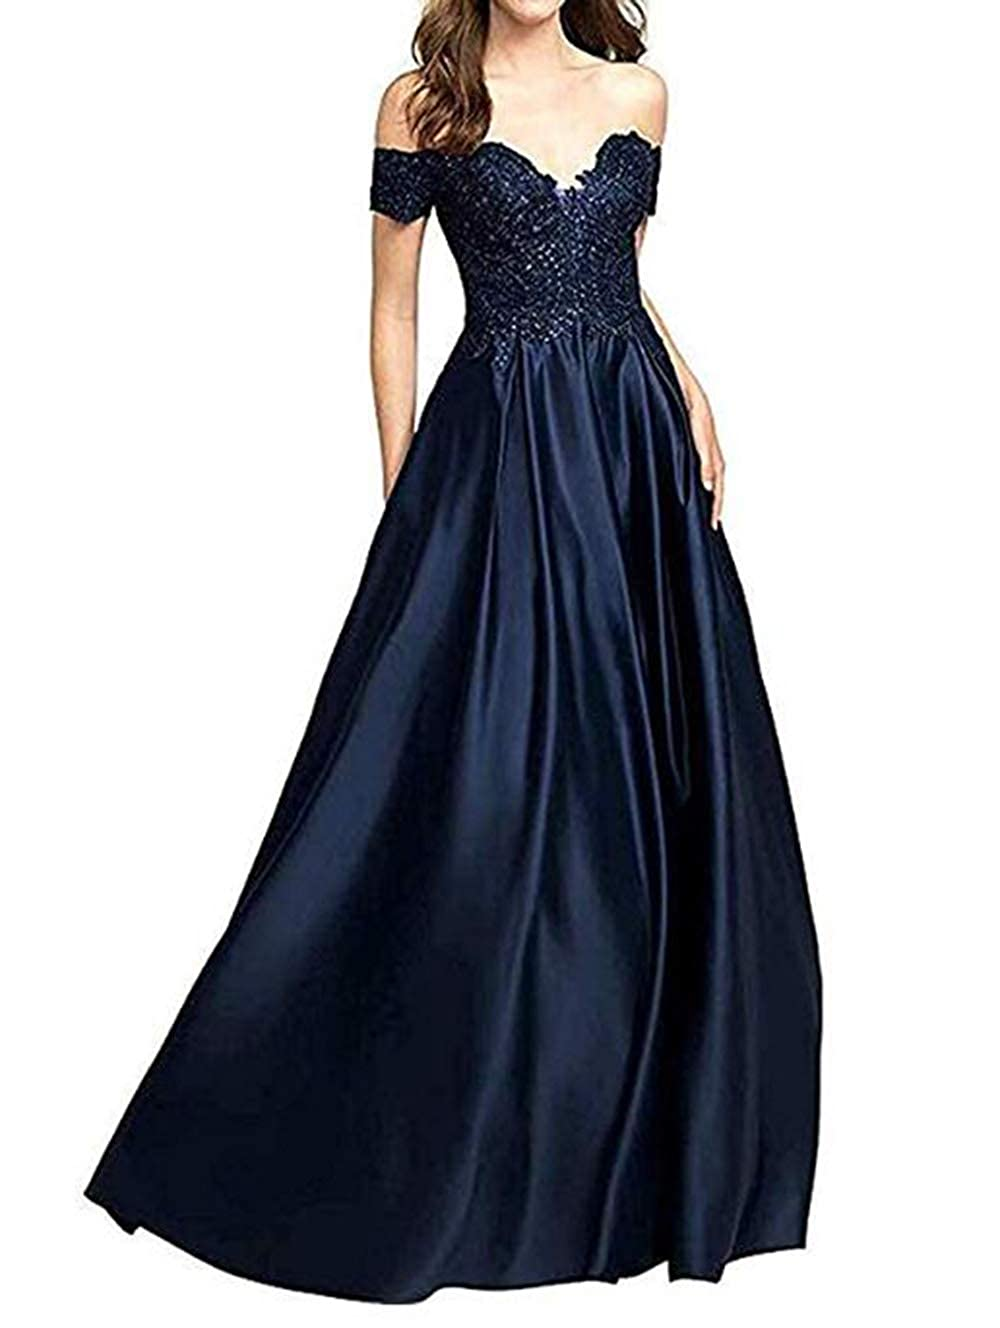 Navy bluee alilith.Z Sexy Off The Shoulder Prom Dresses Long Beaded Lace Satin Evening Dresses Party Gowns for Women 2019